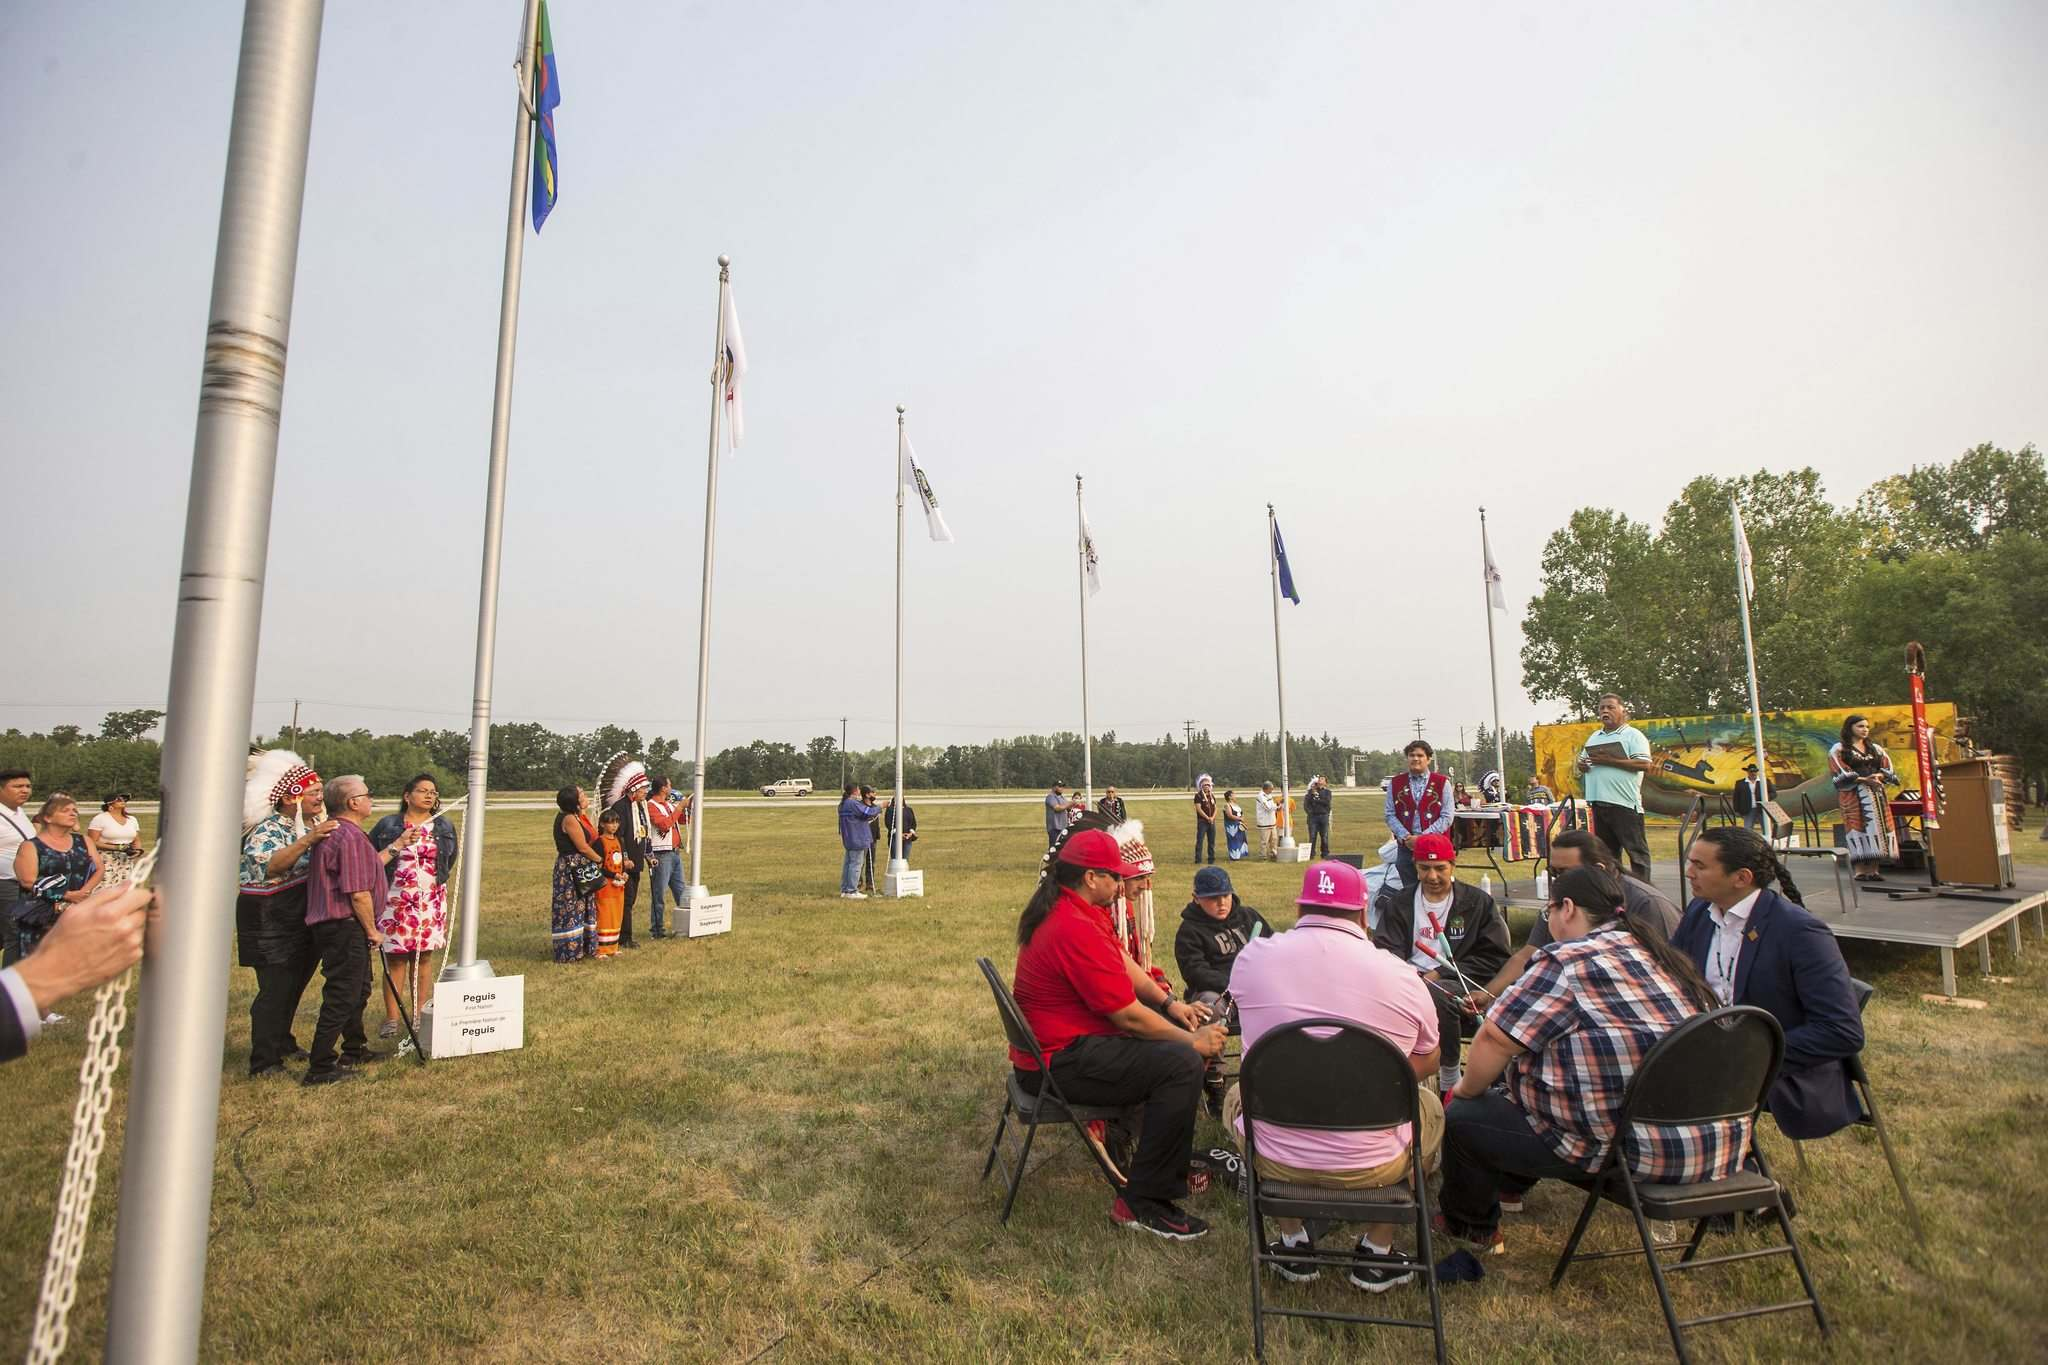 MIKAELA MACKENZIE / WINNIPEG FREE PRESS</p><p>Treaty 1 chiefs raise flags as the Spirit Sands Singers sing a song at a commemoration of the 150th anniversary of the making of Treaty No. 1 at the Lower Fort Garry National Historic Site on Tuesday.</p>